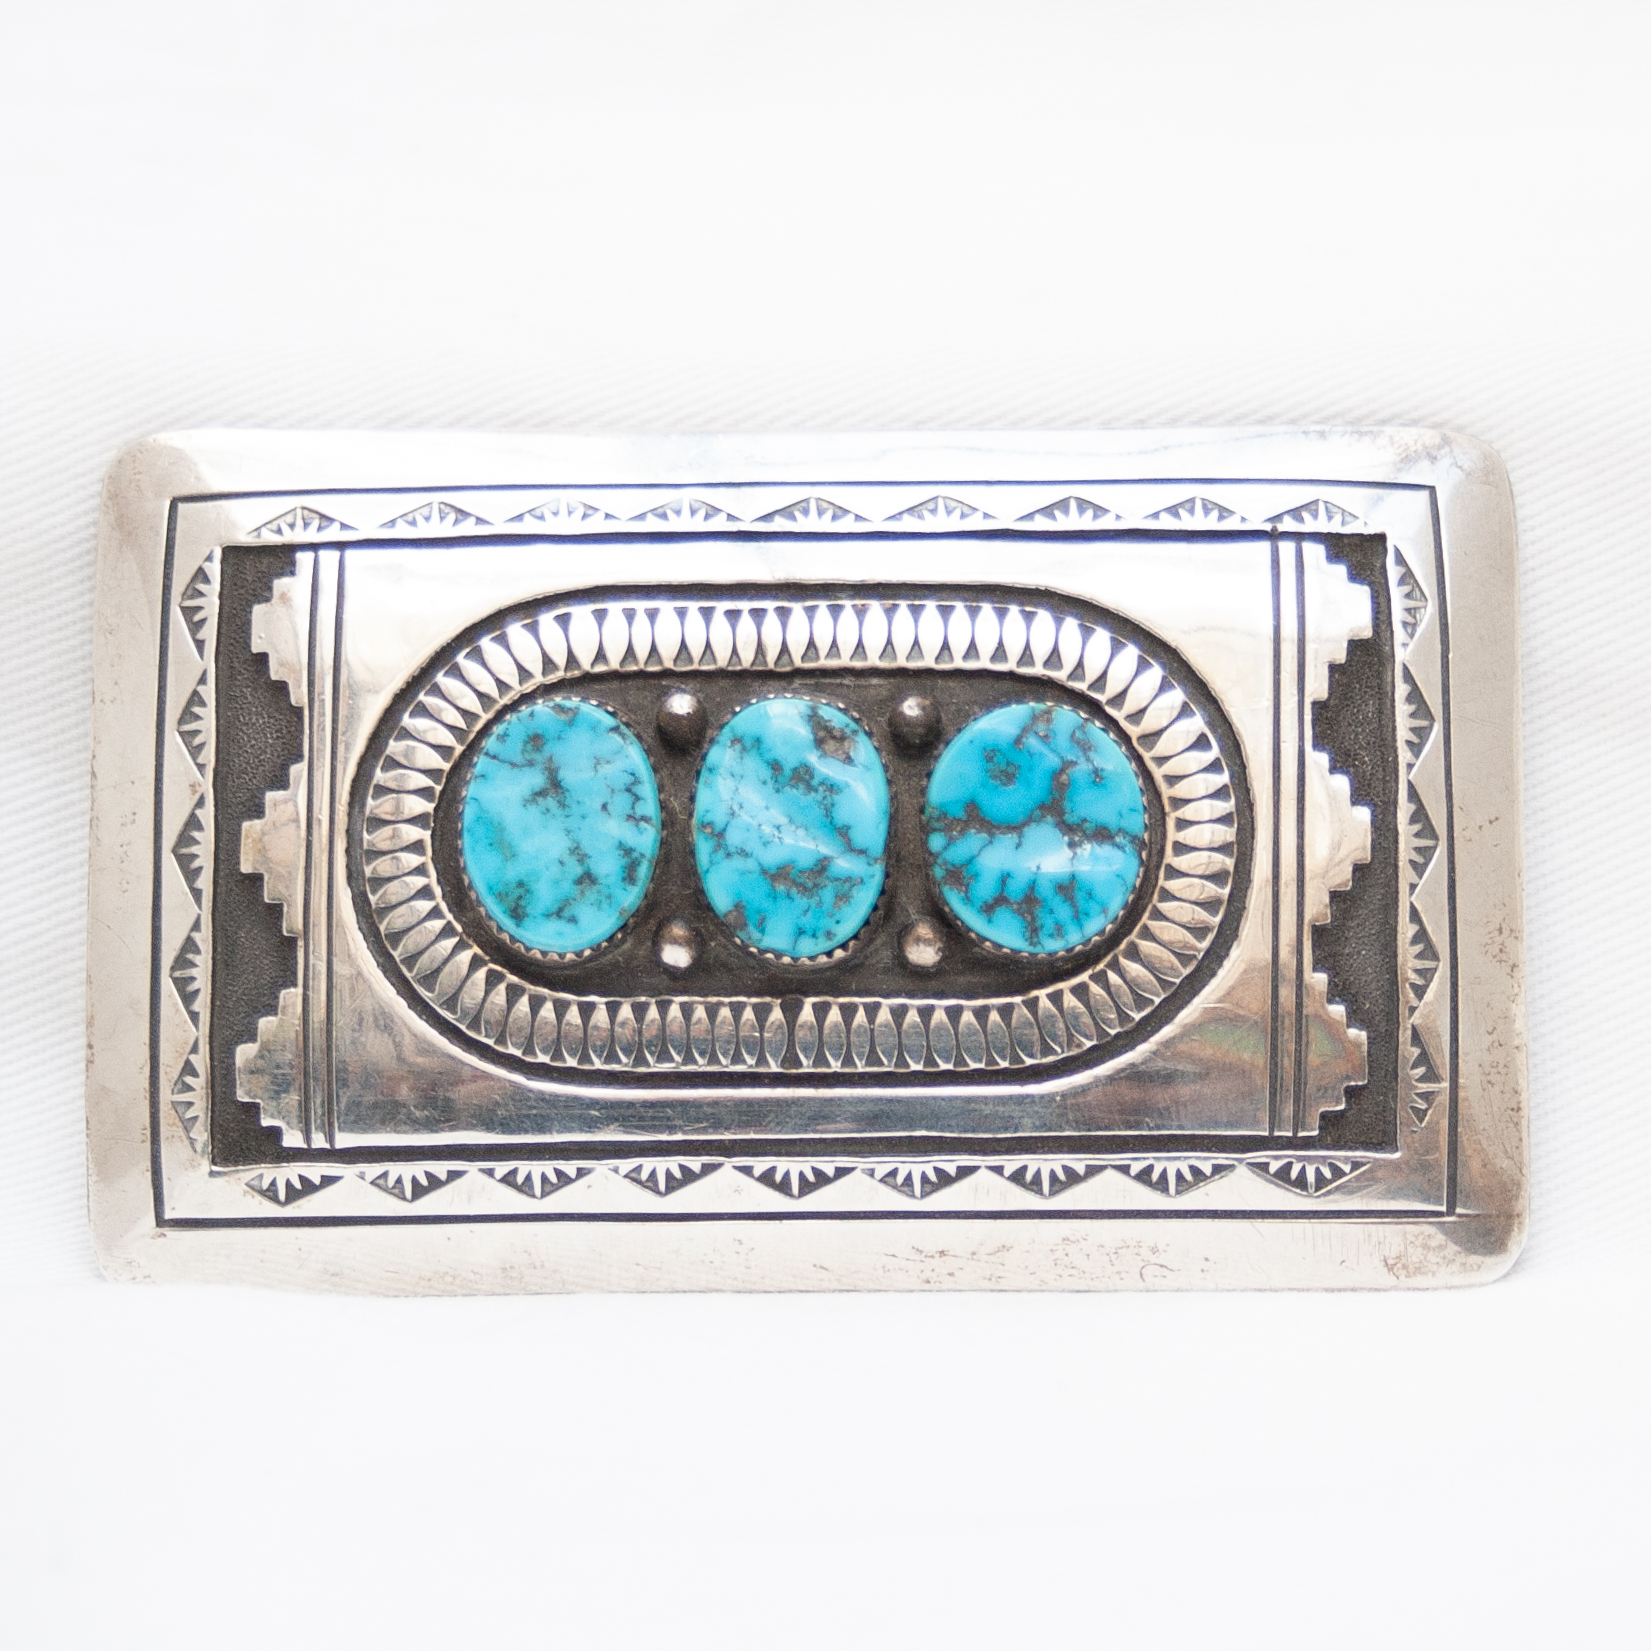 NS Begay Large Triple Turquoise Belt Buckle